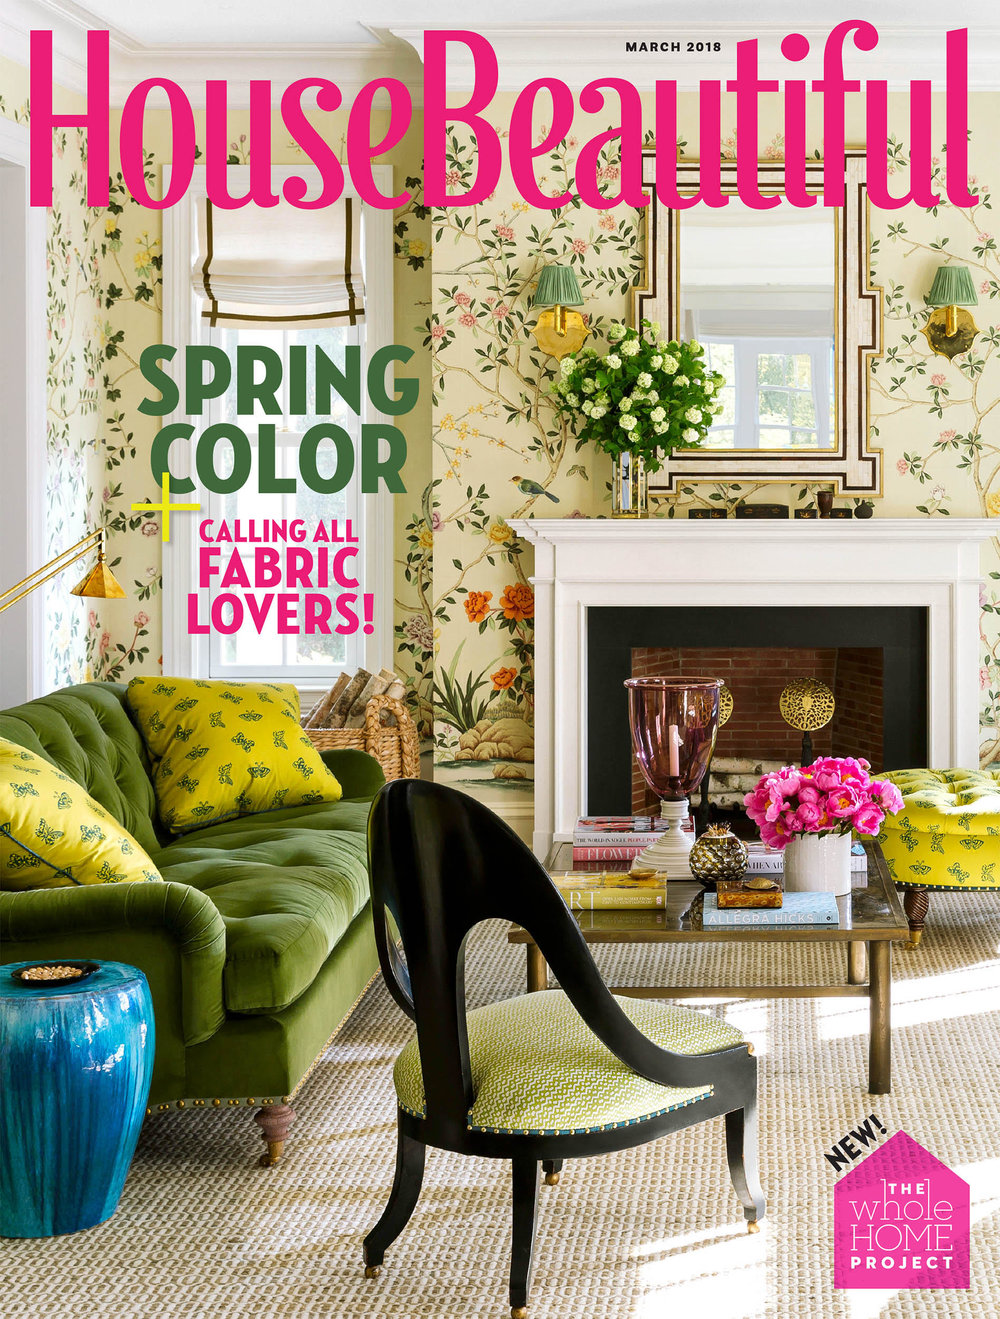 HouseBeautiful_March2018_cover.jpg